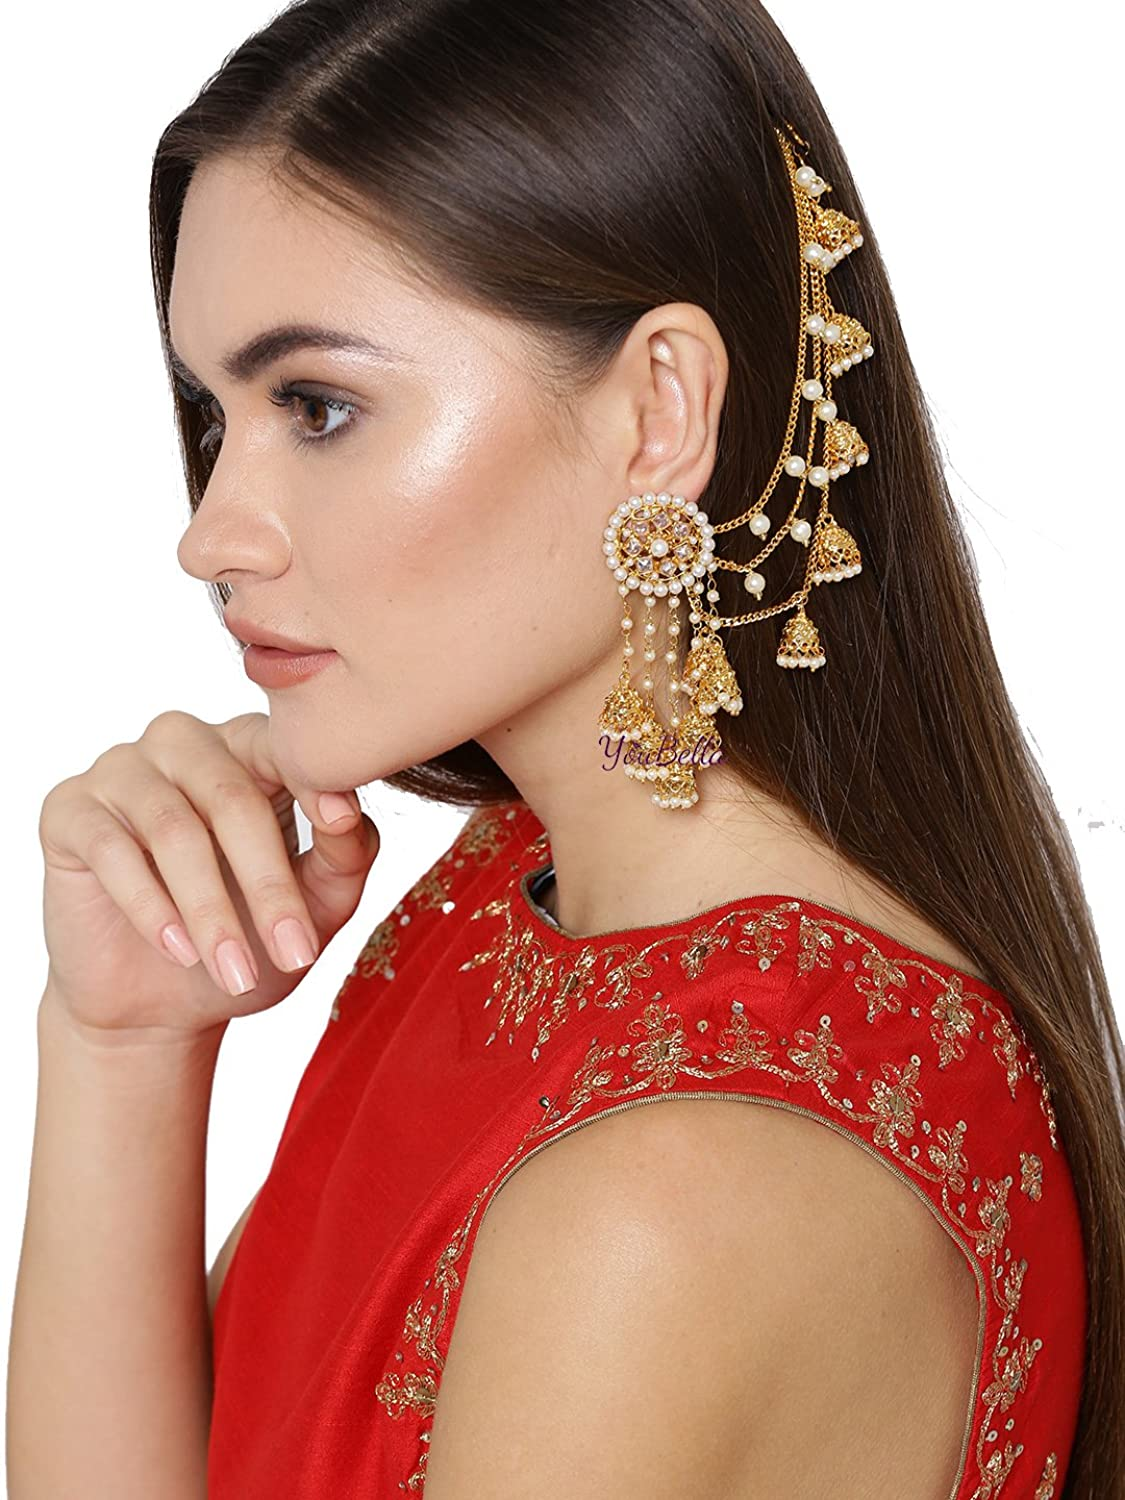 Youbella Jewellery Traditional Stylish Gold Plated Pearl Fan